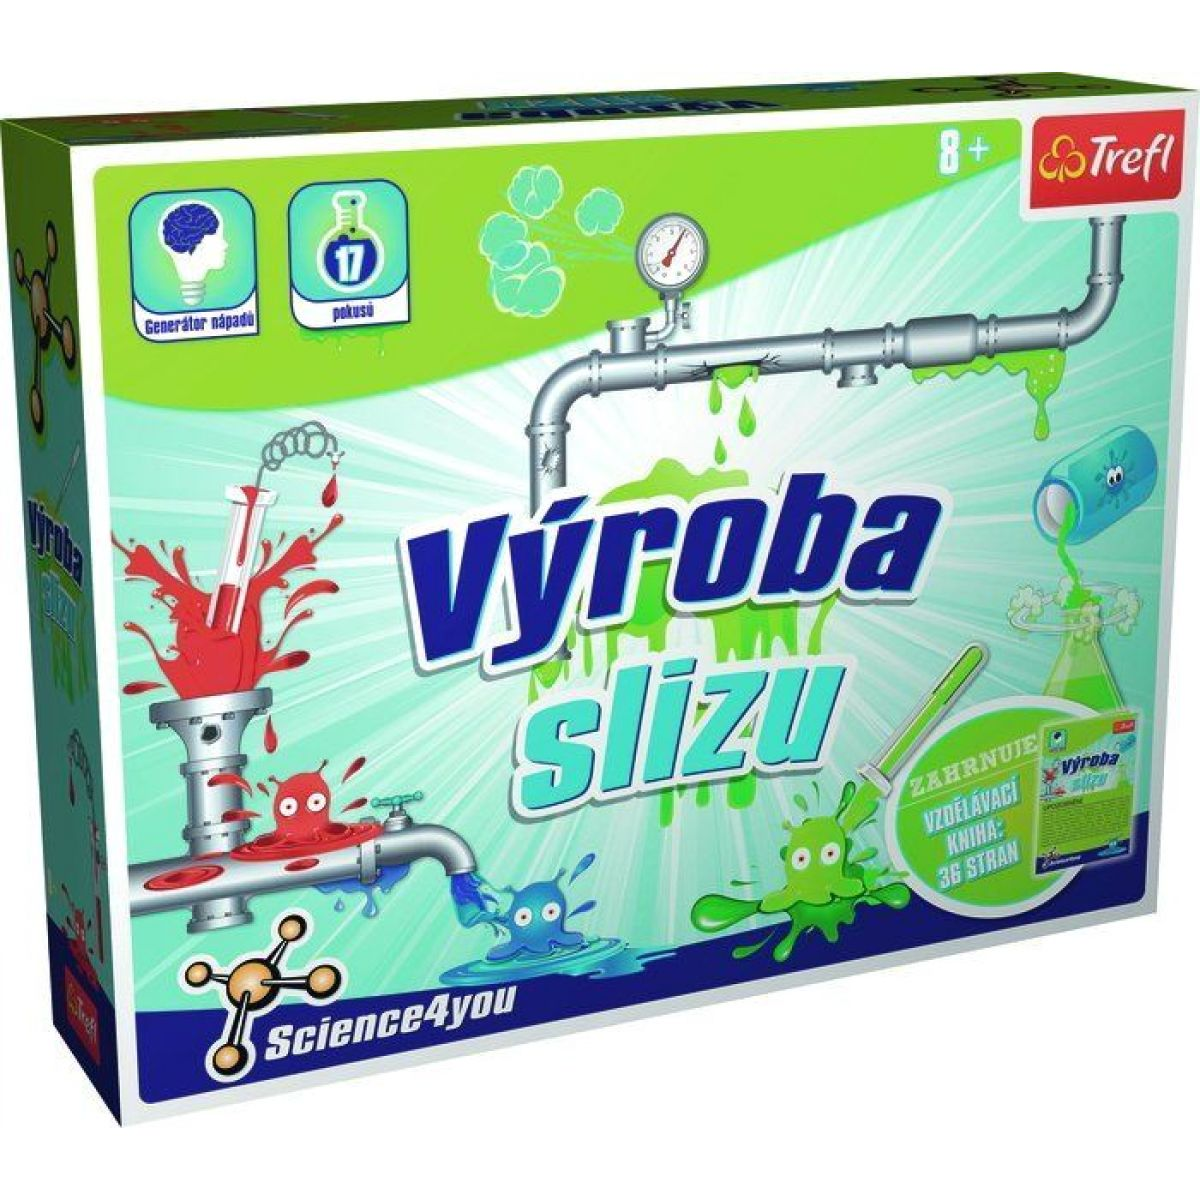 Trefl Výroba slizu Science 4 you